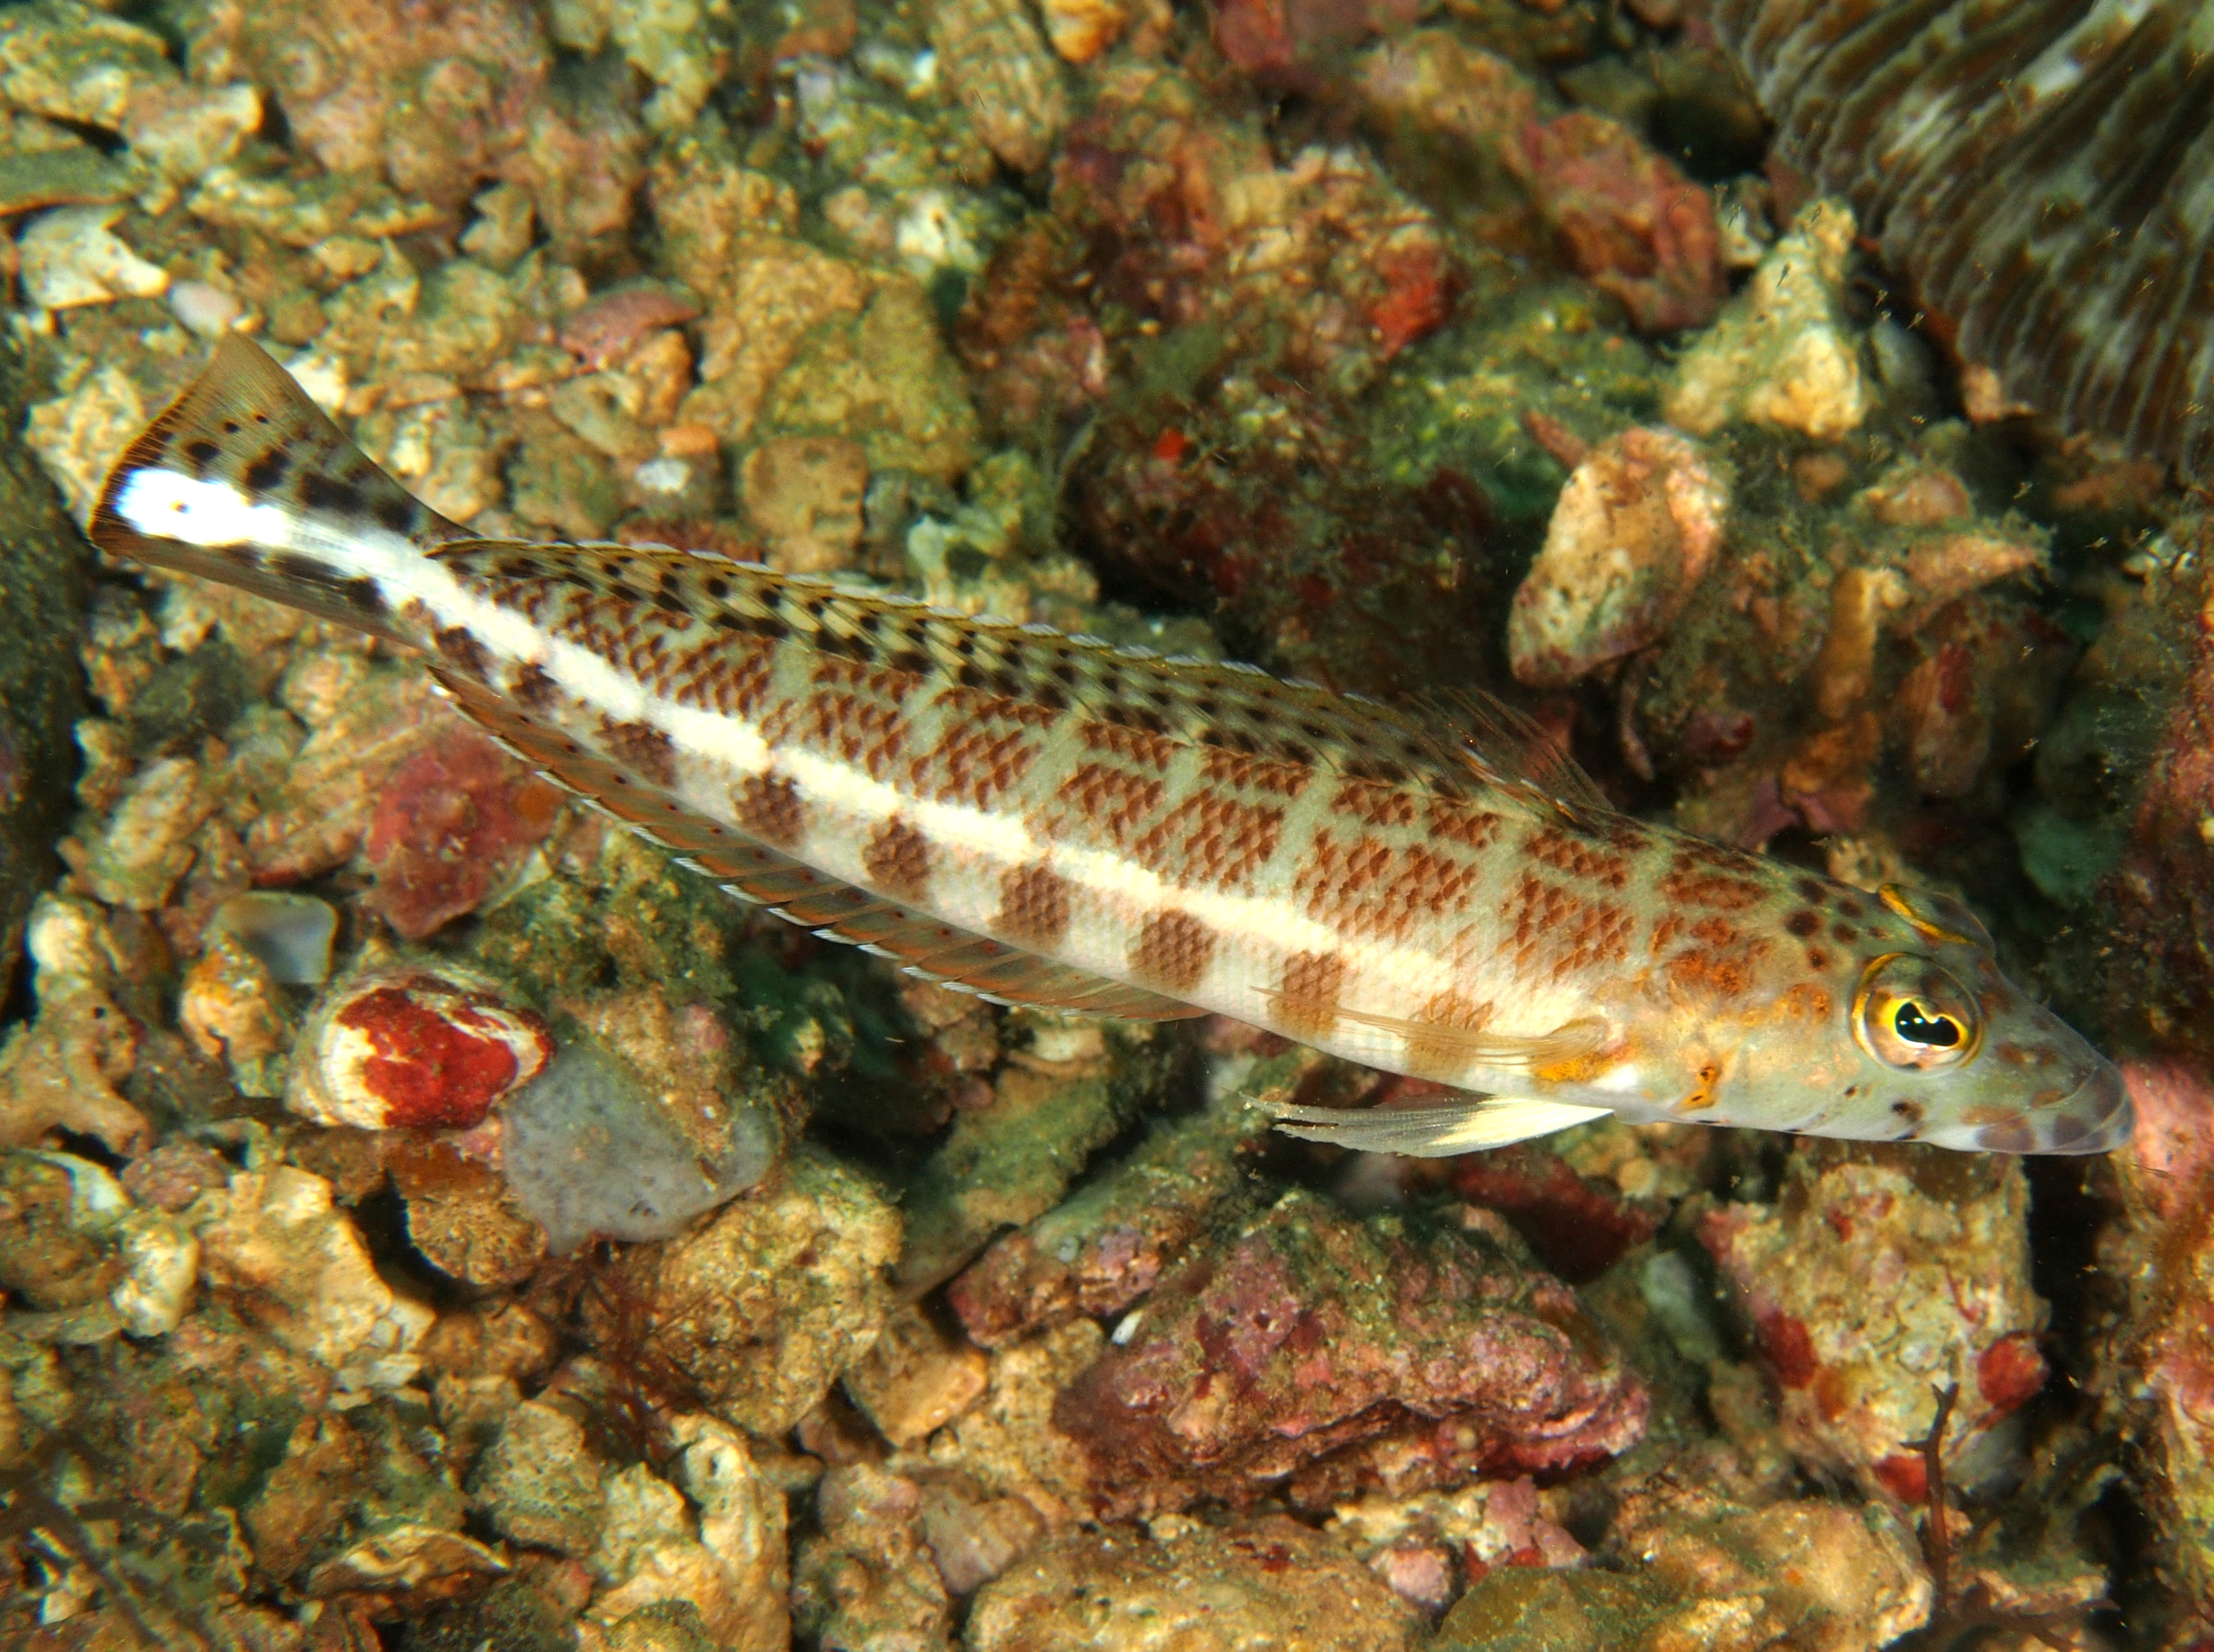 Whitestripe Sandperch - Parapercis xanthozona - Anilao, Philippines